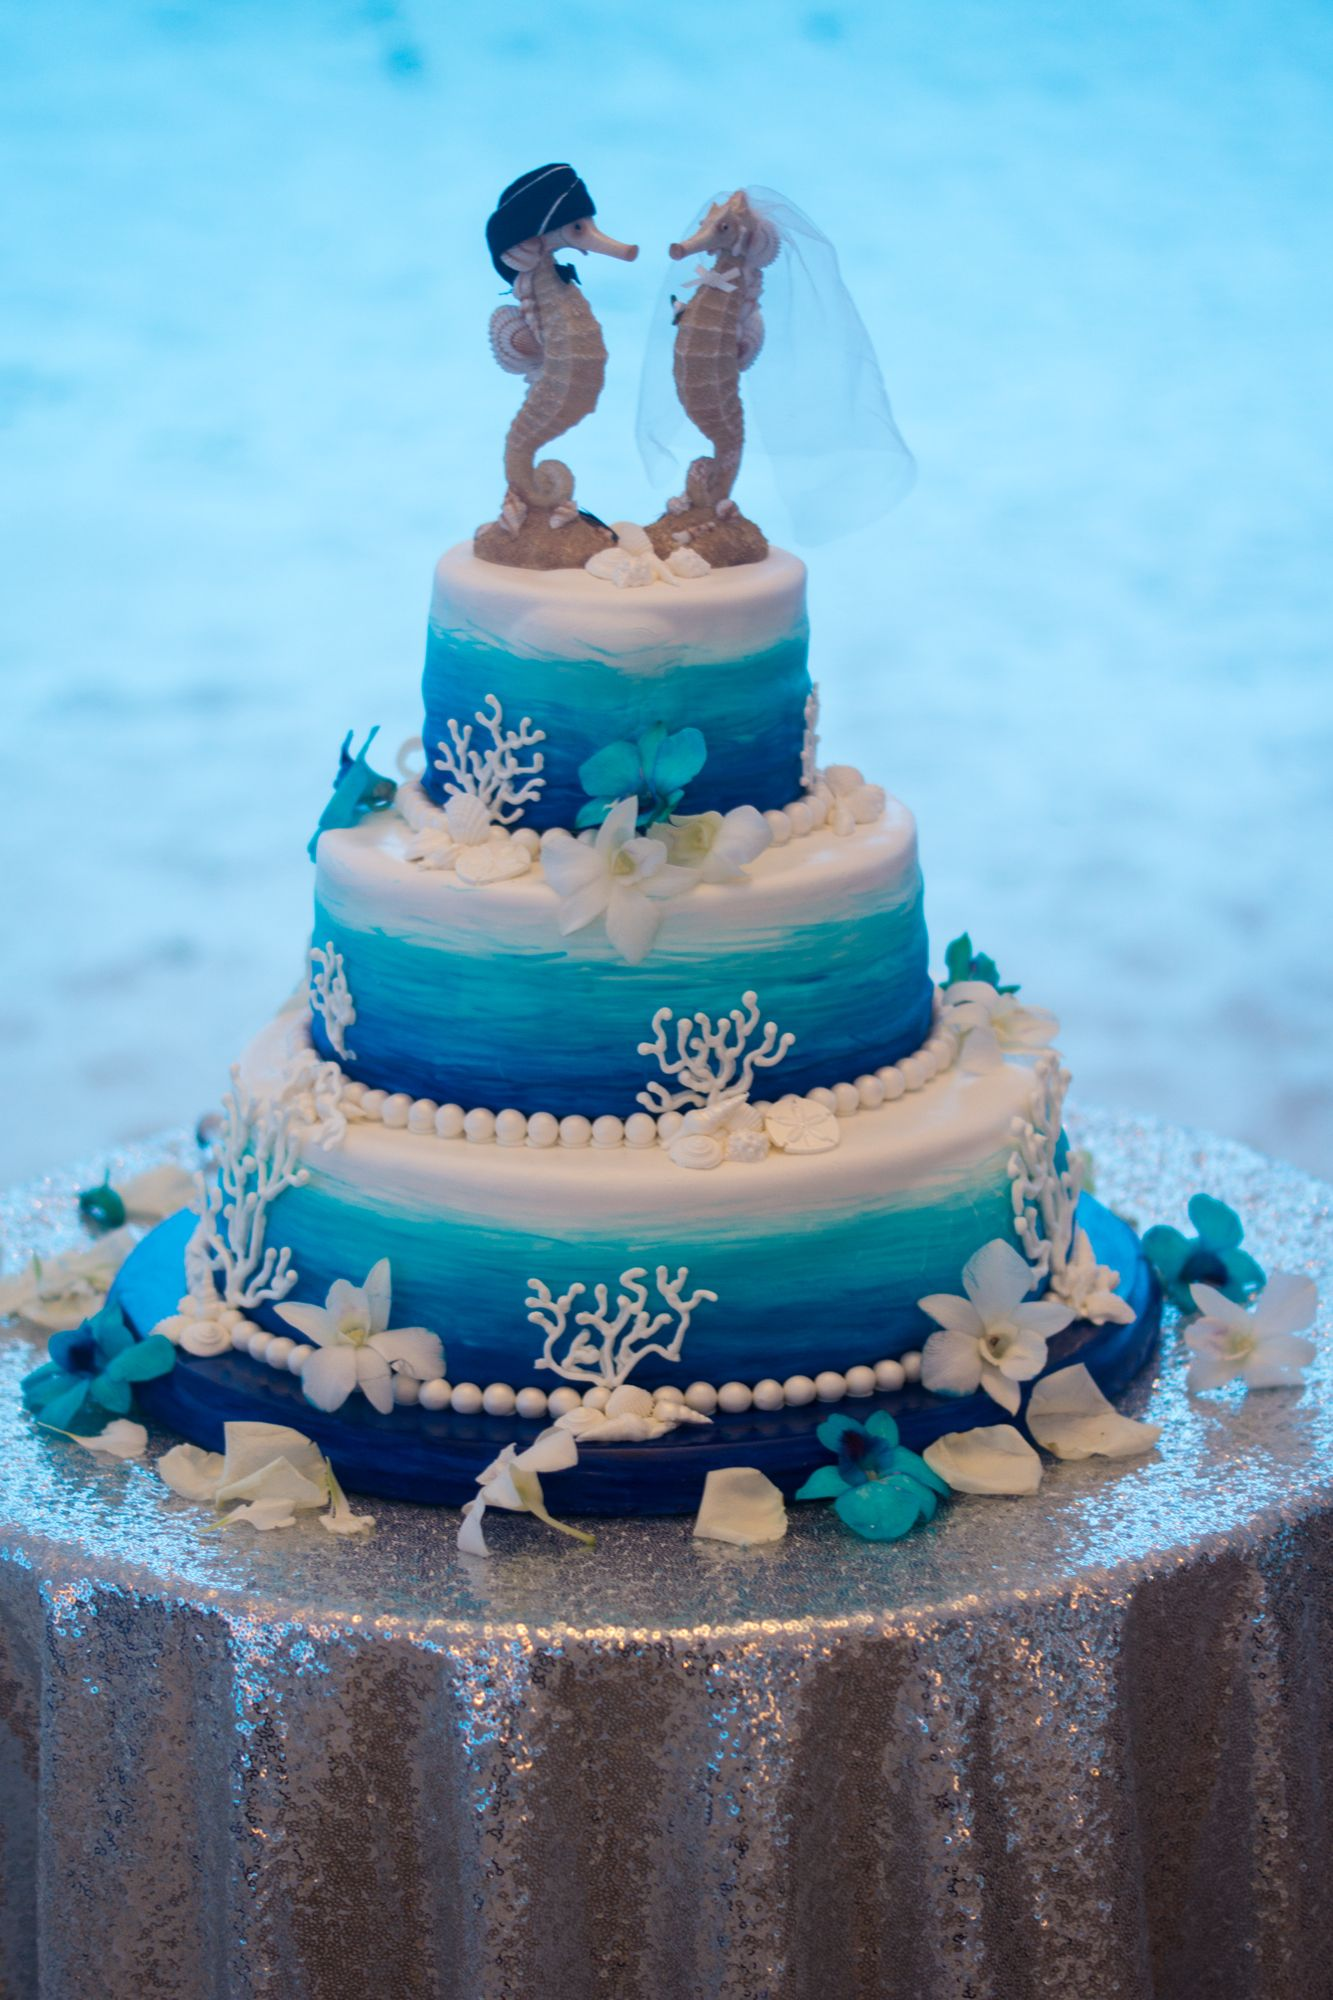 Beach themed wedding cake  14 Avenida 500, Pensacola Beach, Florida www.CoastalSoirees.com